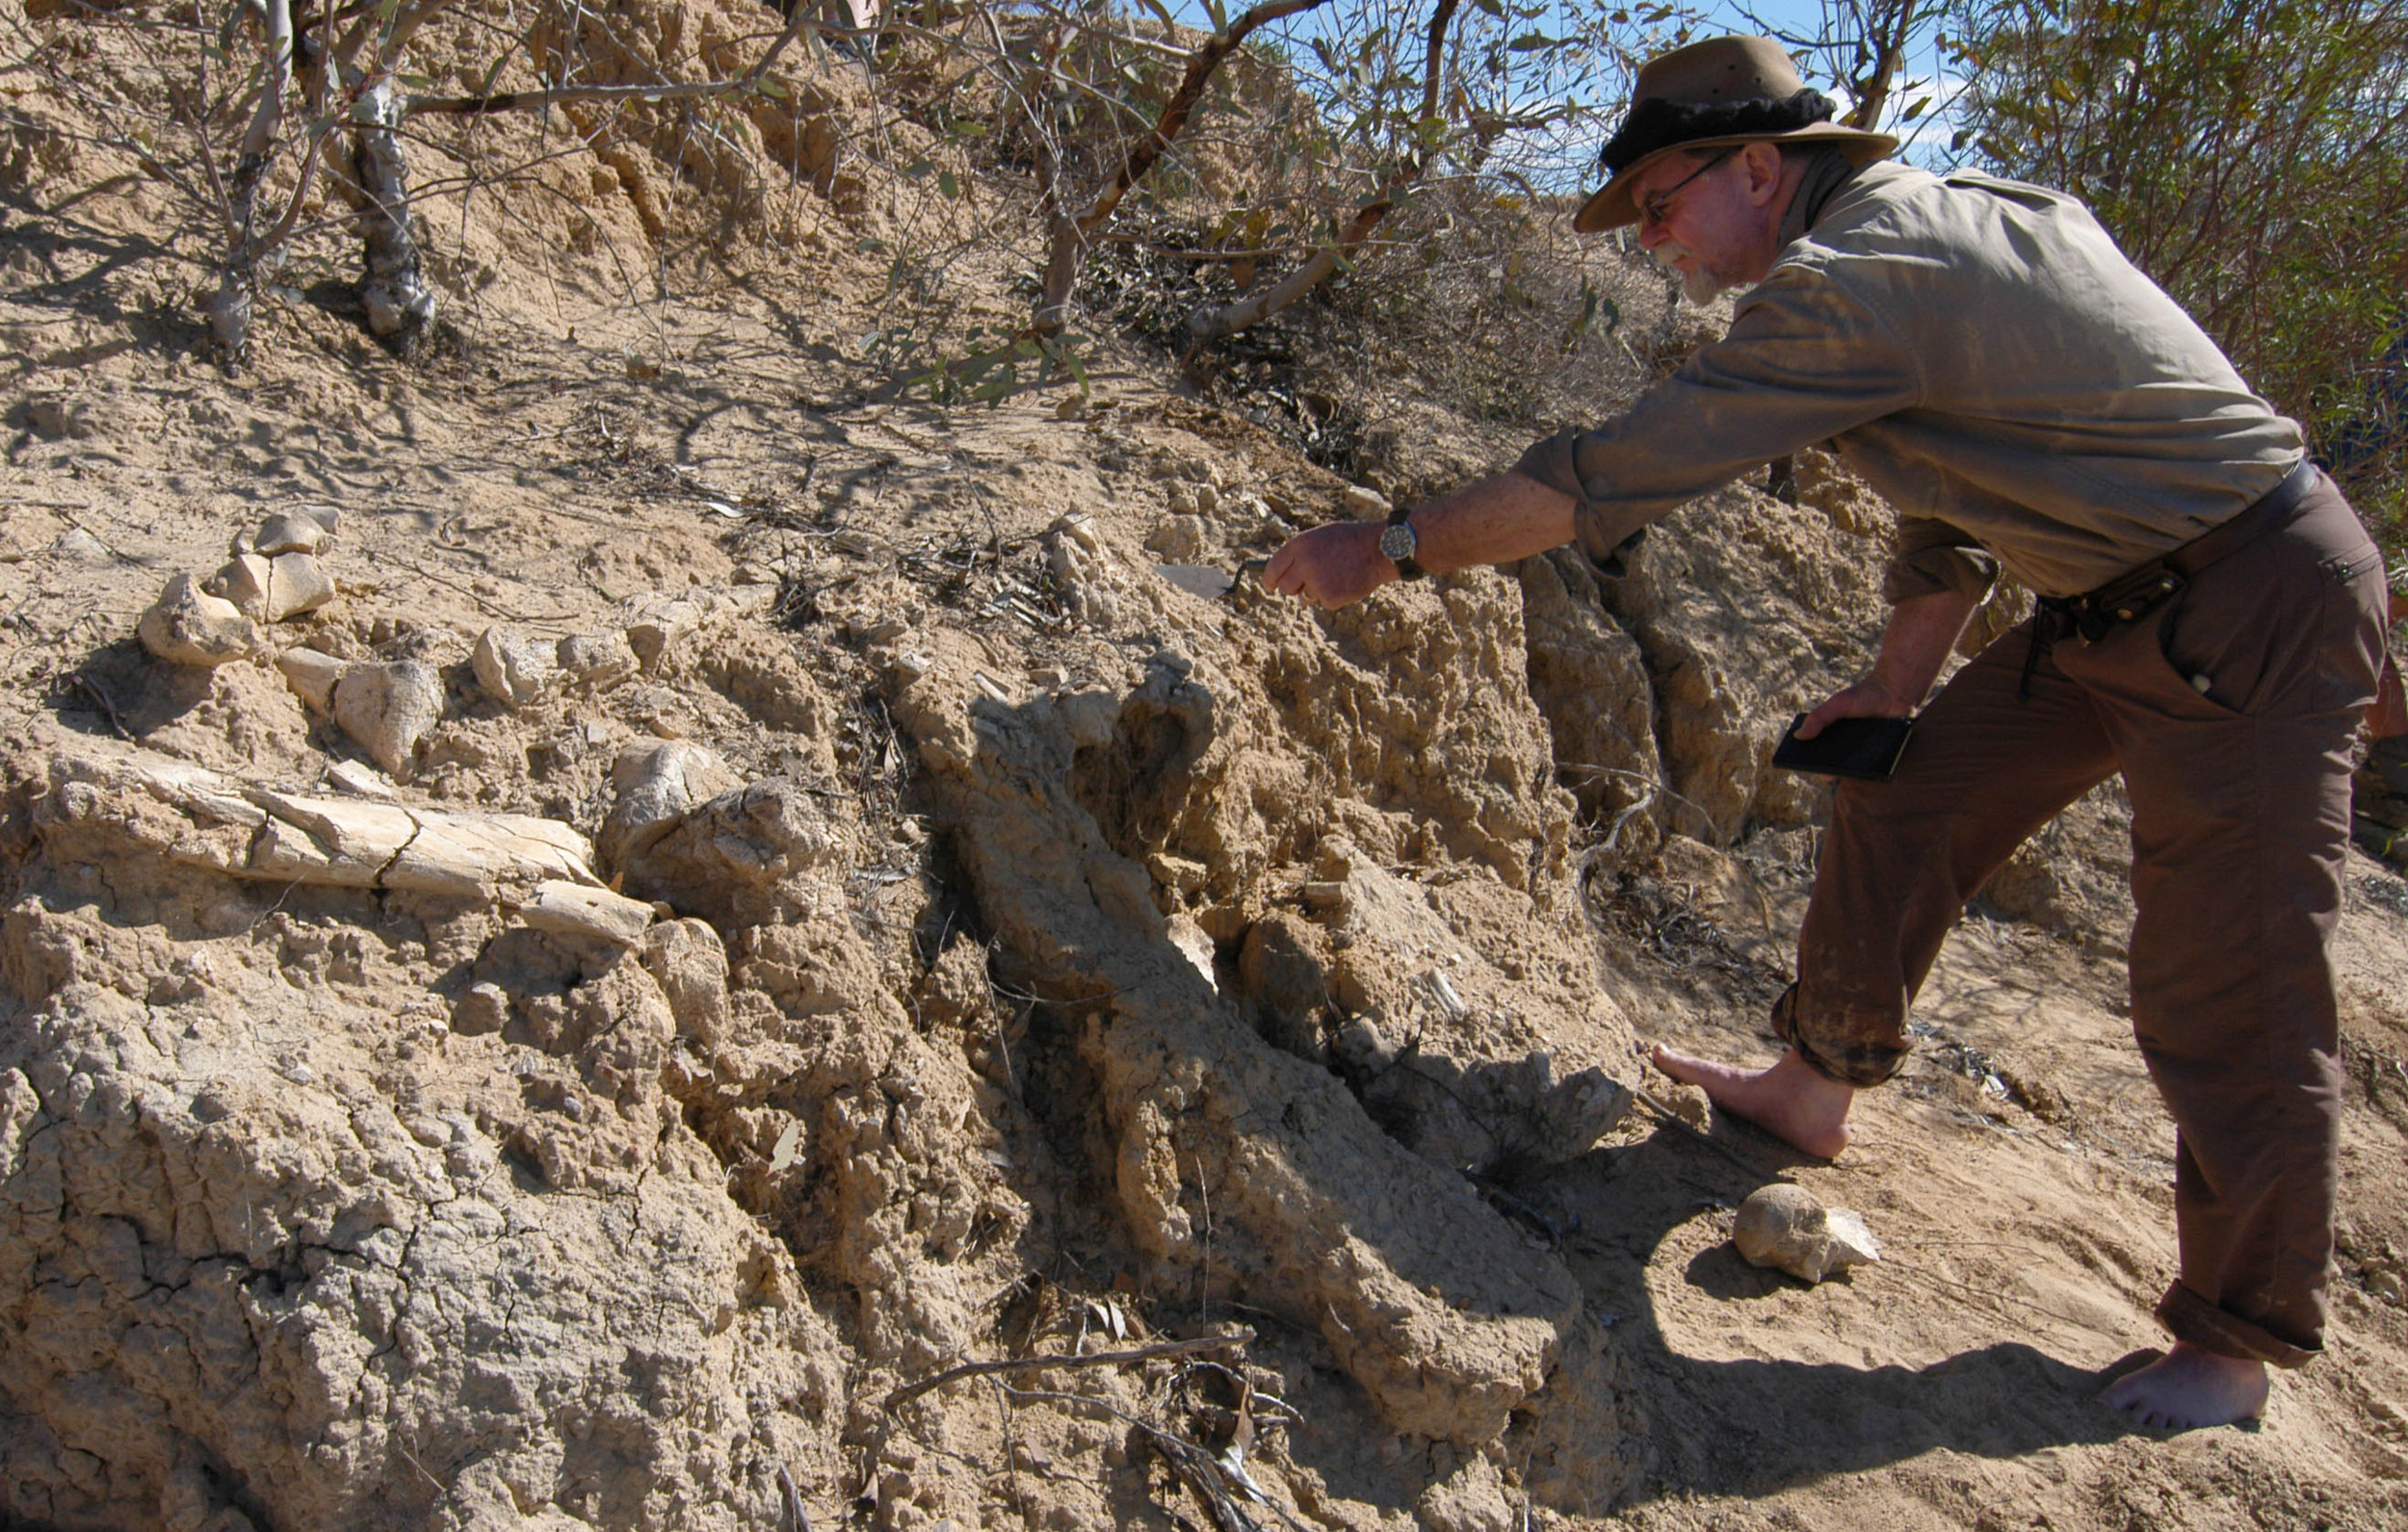 Dr Mike Smith, National Museum of Australia, examines megafauna fossil, Arid Rivers Expedition 2007.